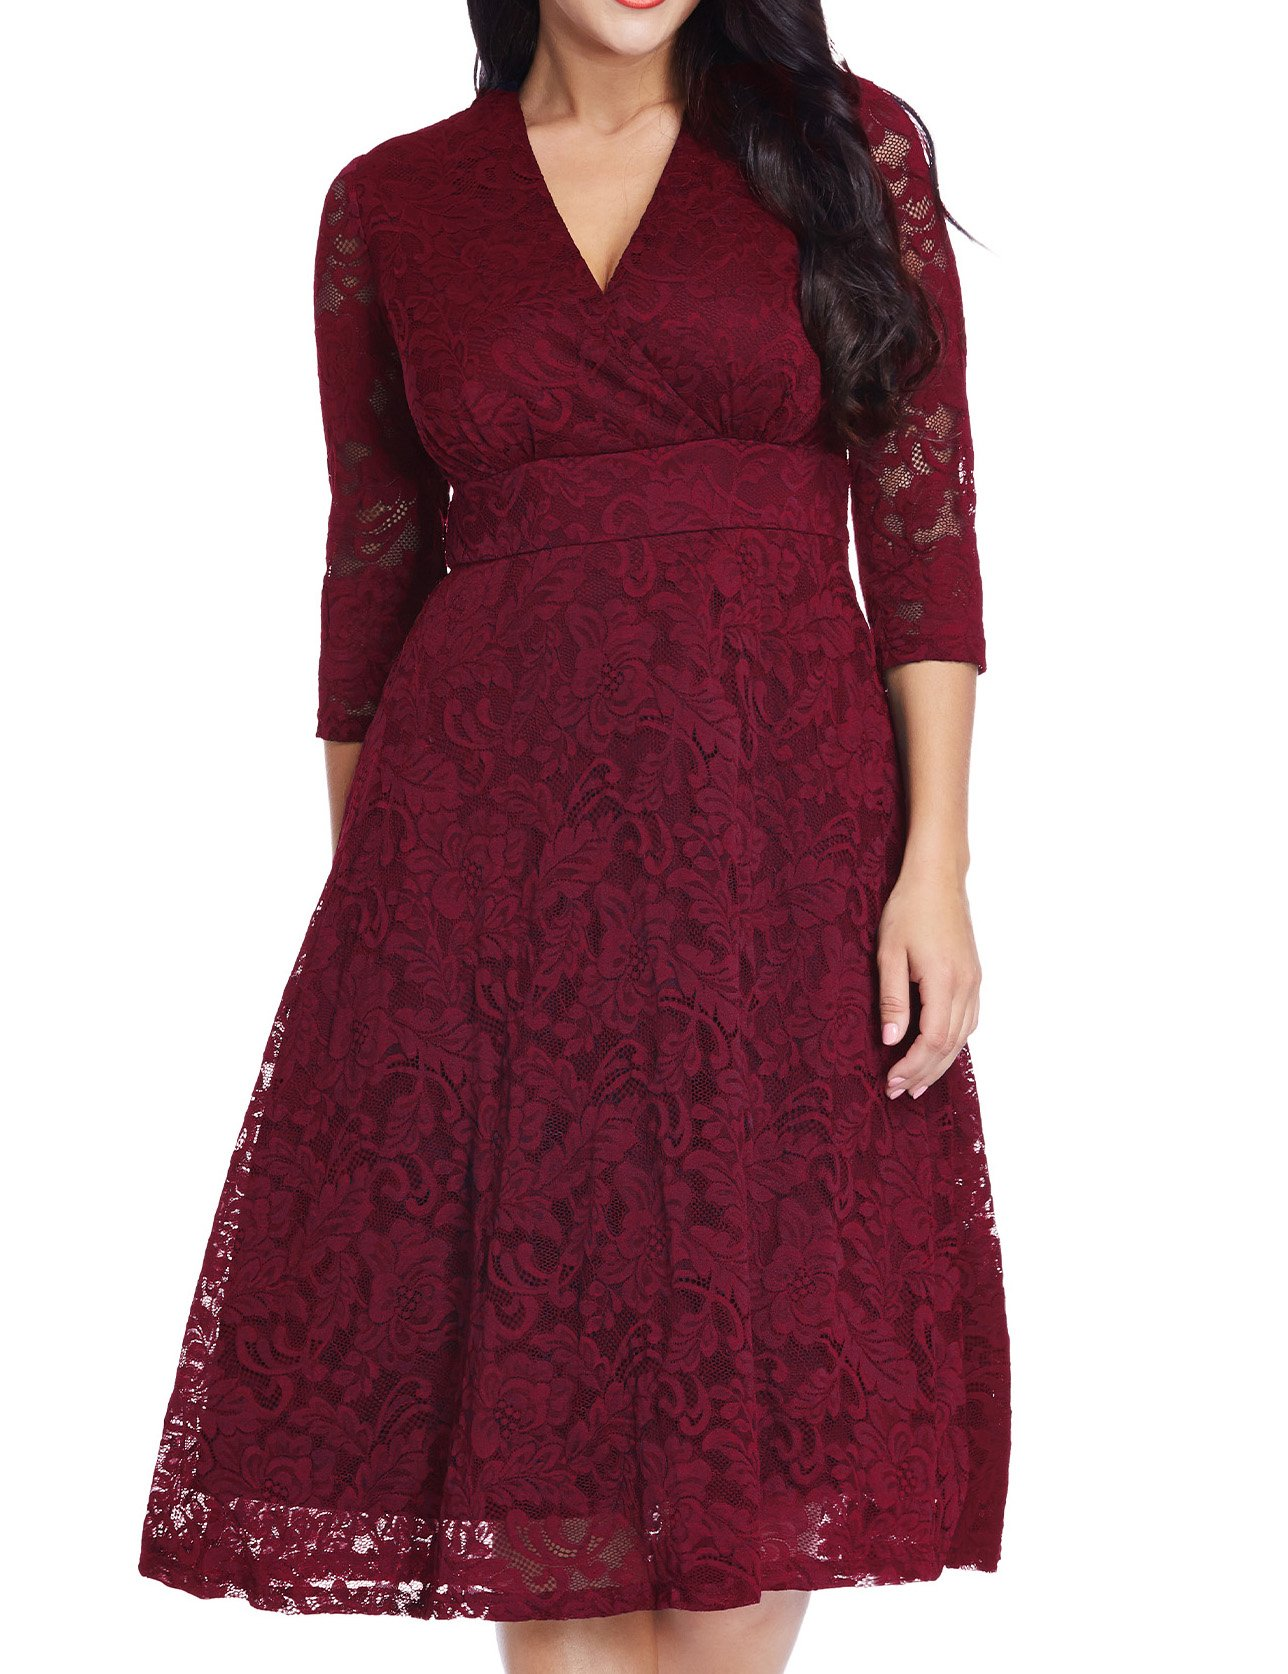 GRAPENT Women's Lace Plus Size Mother Of The Bride Skater Dress Bridal Wedding Party Maroon 16W by GRAPENT (Image #3)